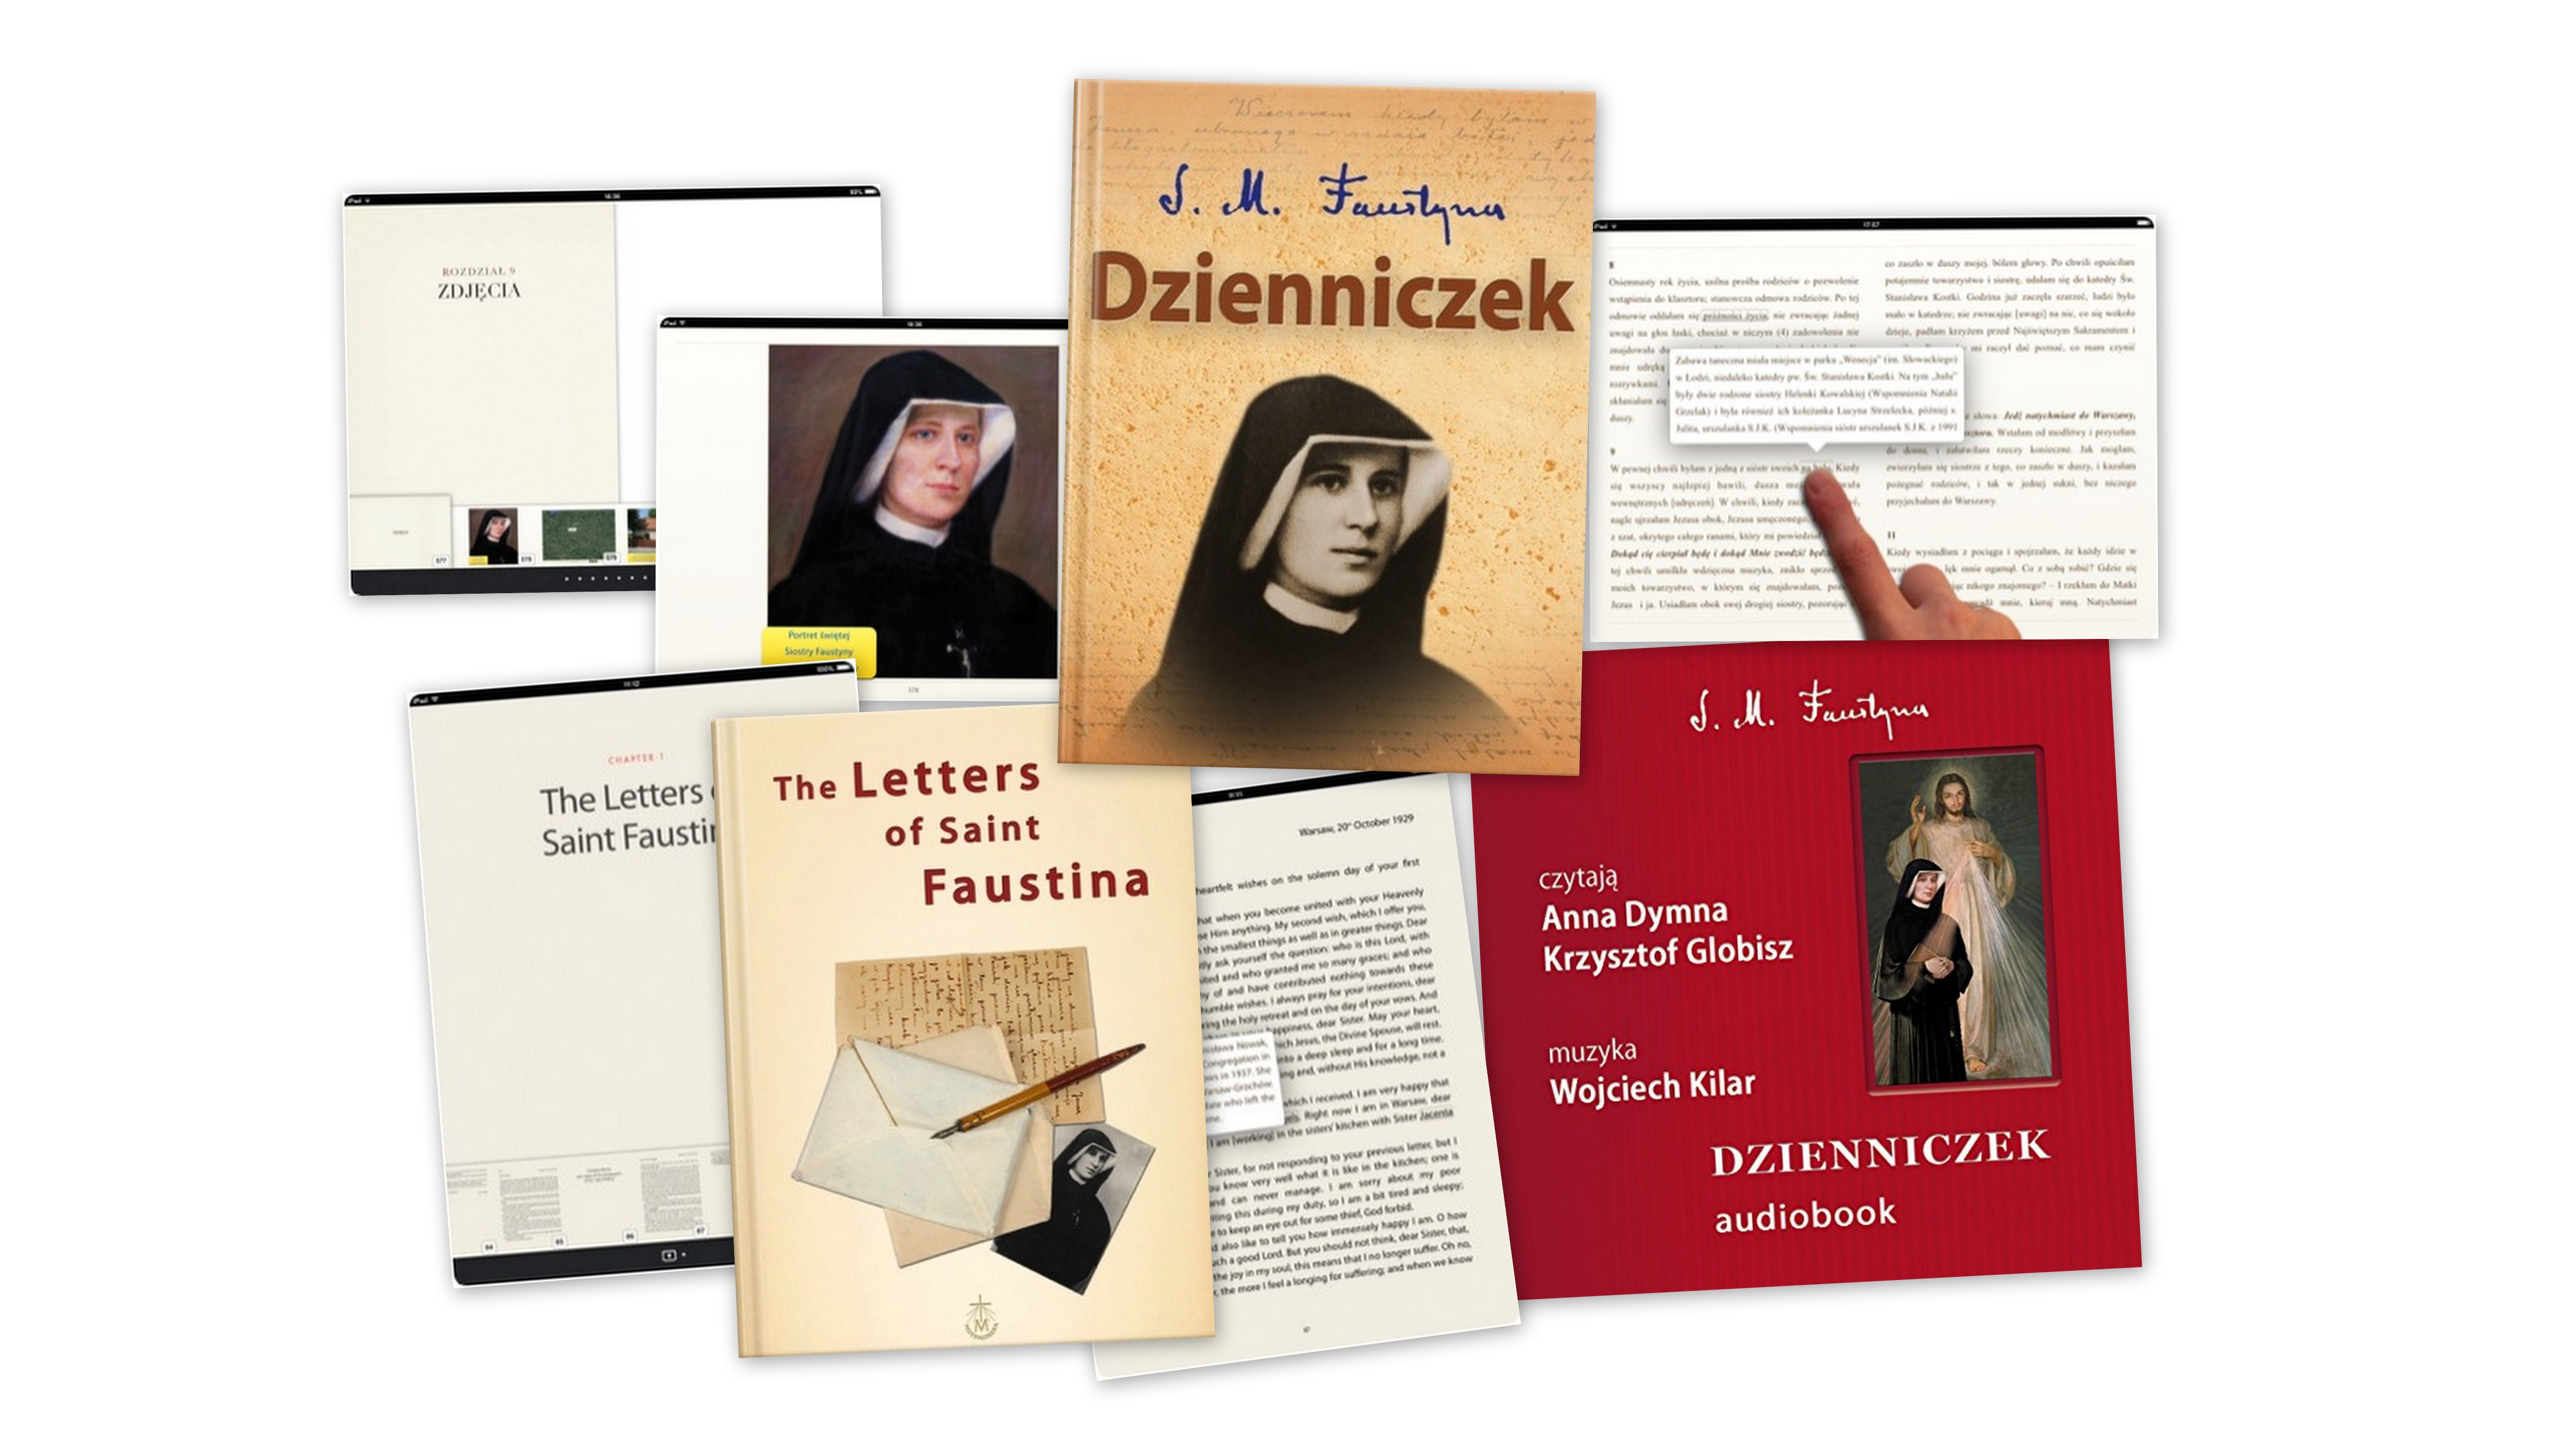 Dzienniczek - audiobook, ebook, The Letters of Saint Faustina - ebook